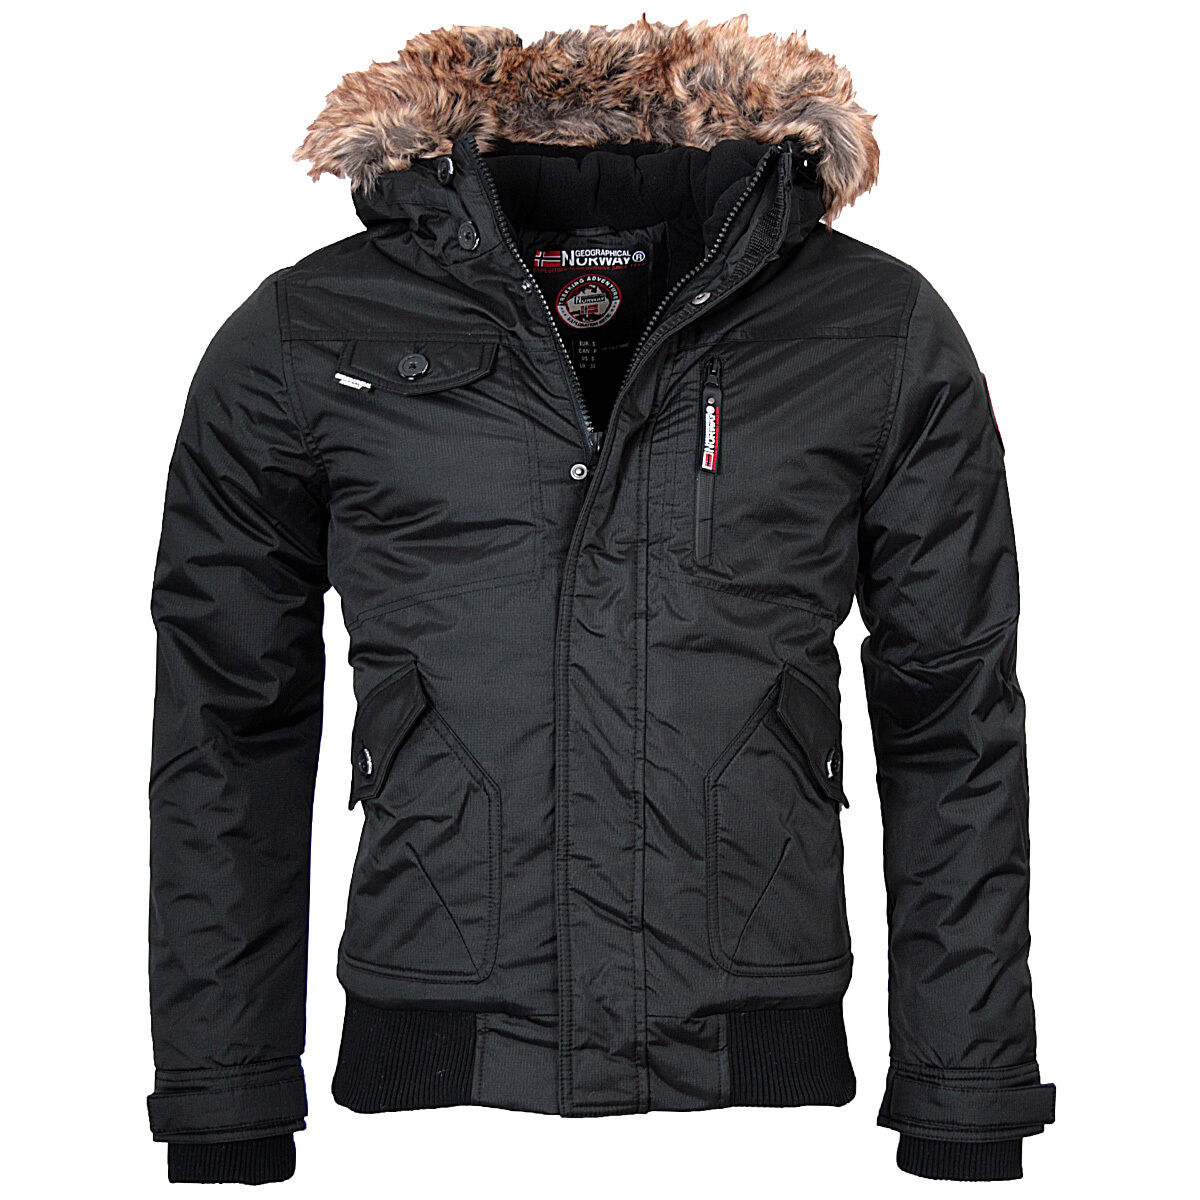 geographical norway bizon herren winter jacke warme jacke. Black Bedroom Furniture Sets. Home Design Ideas